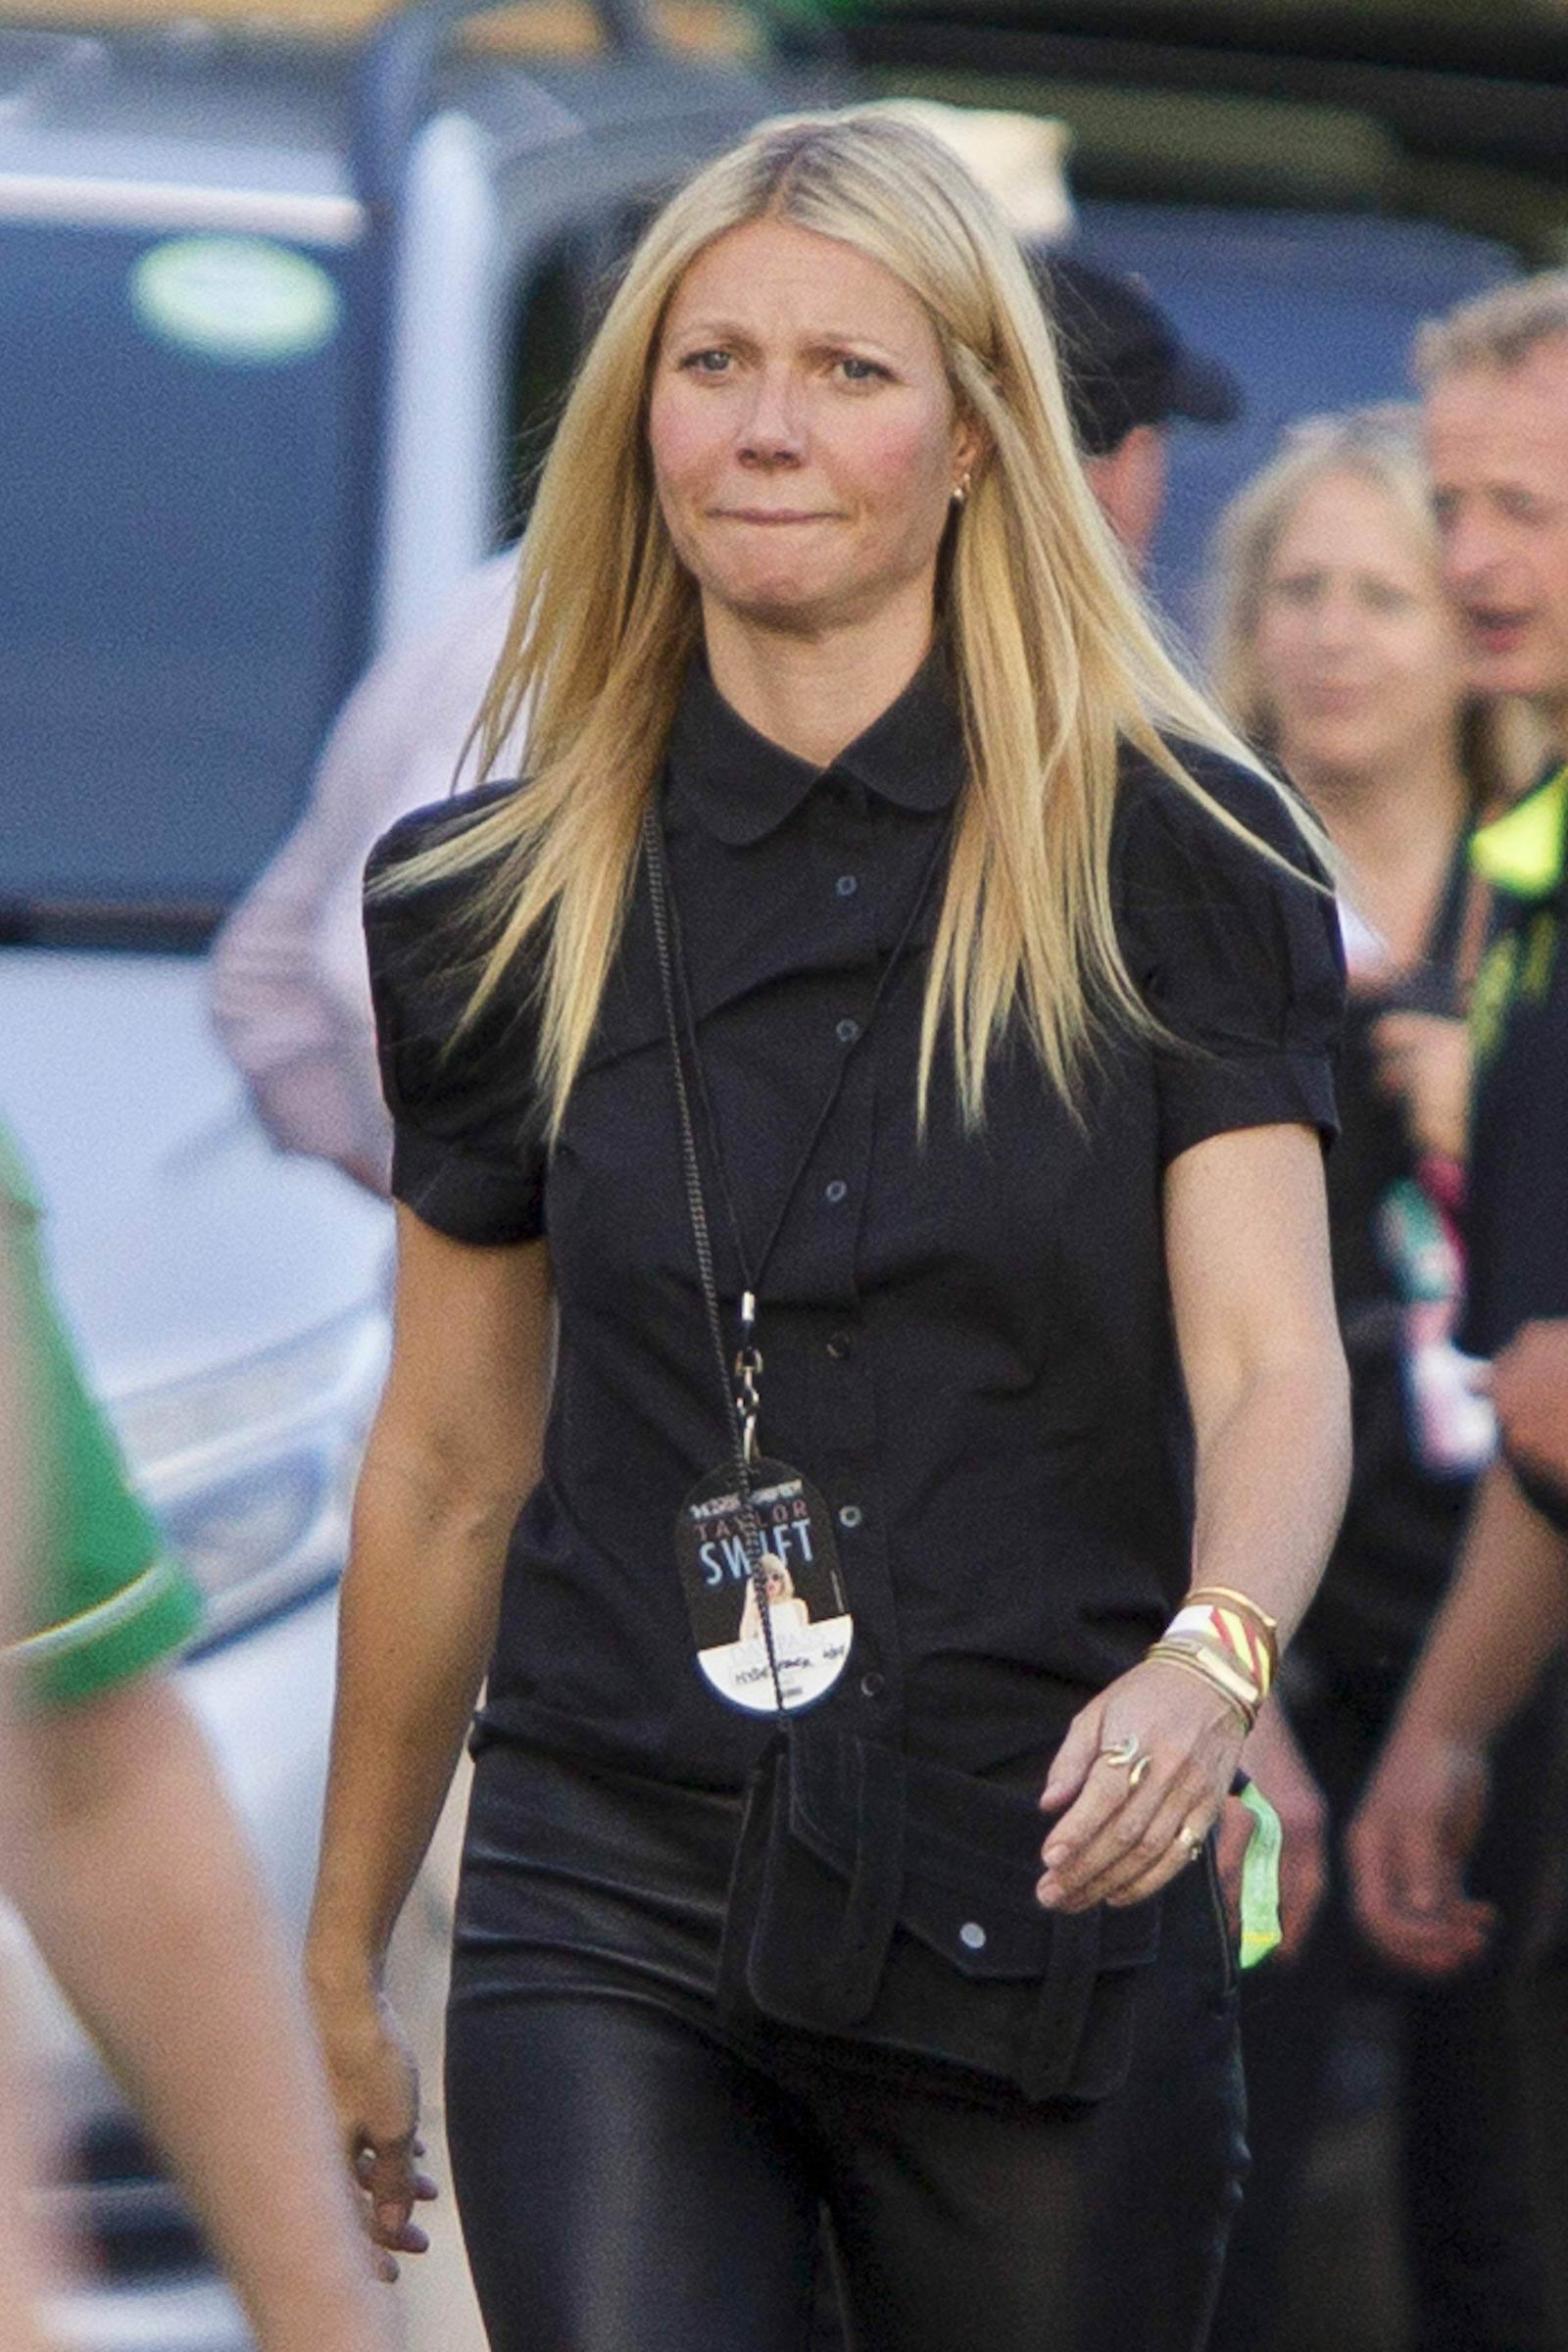 Gwyneth Paltrow at the Taylor Swift concert